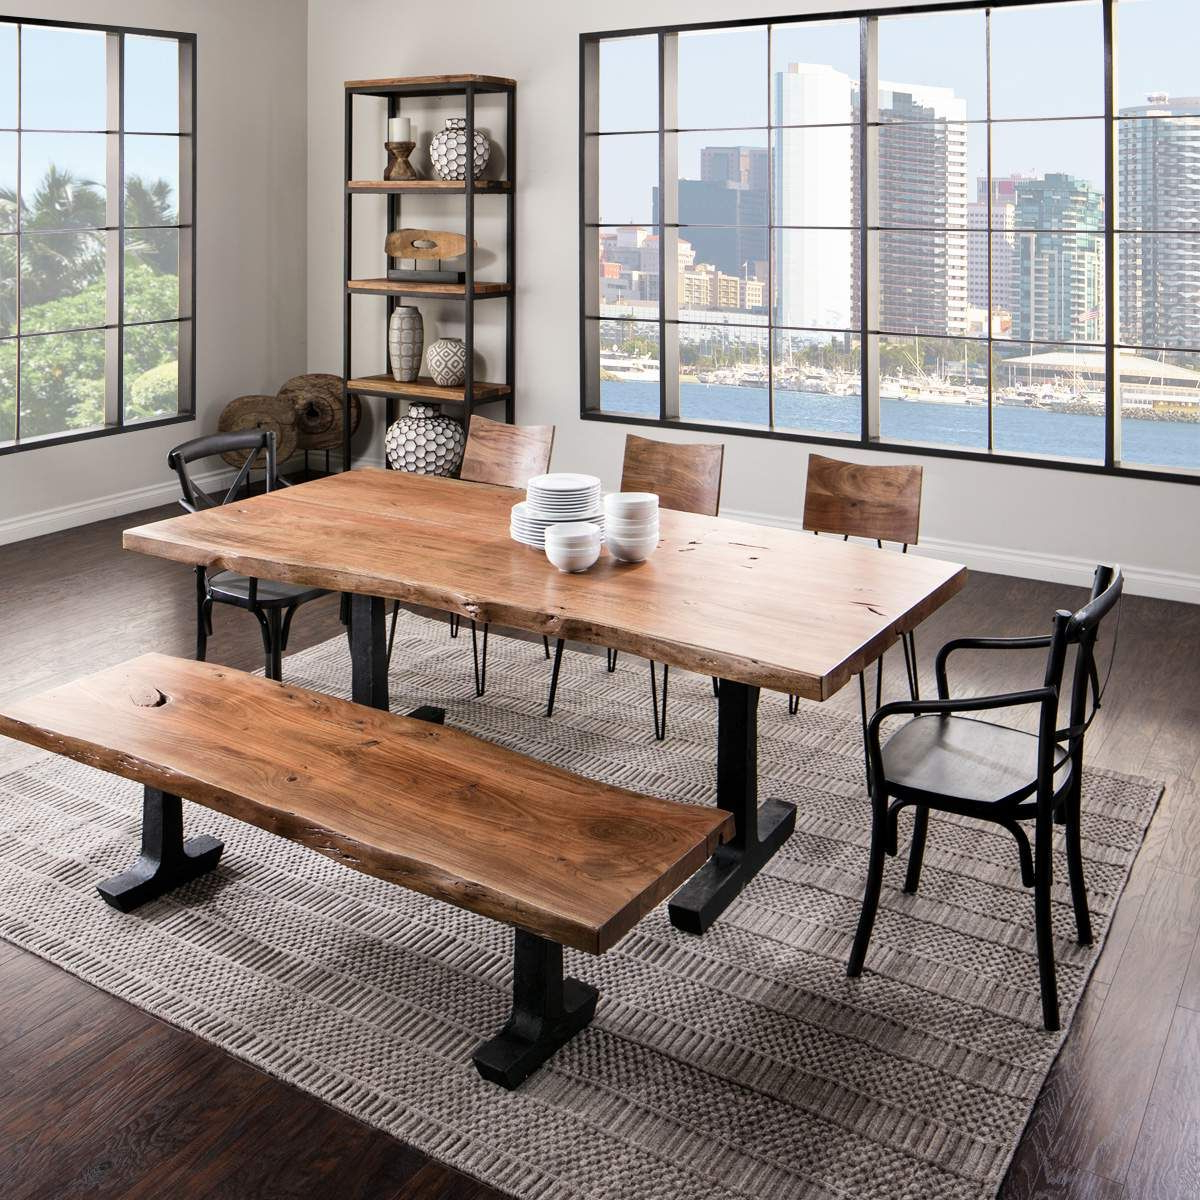 Unique Dining Tables, Dining Table With (View 3 of 30)